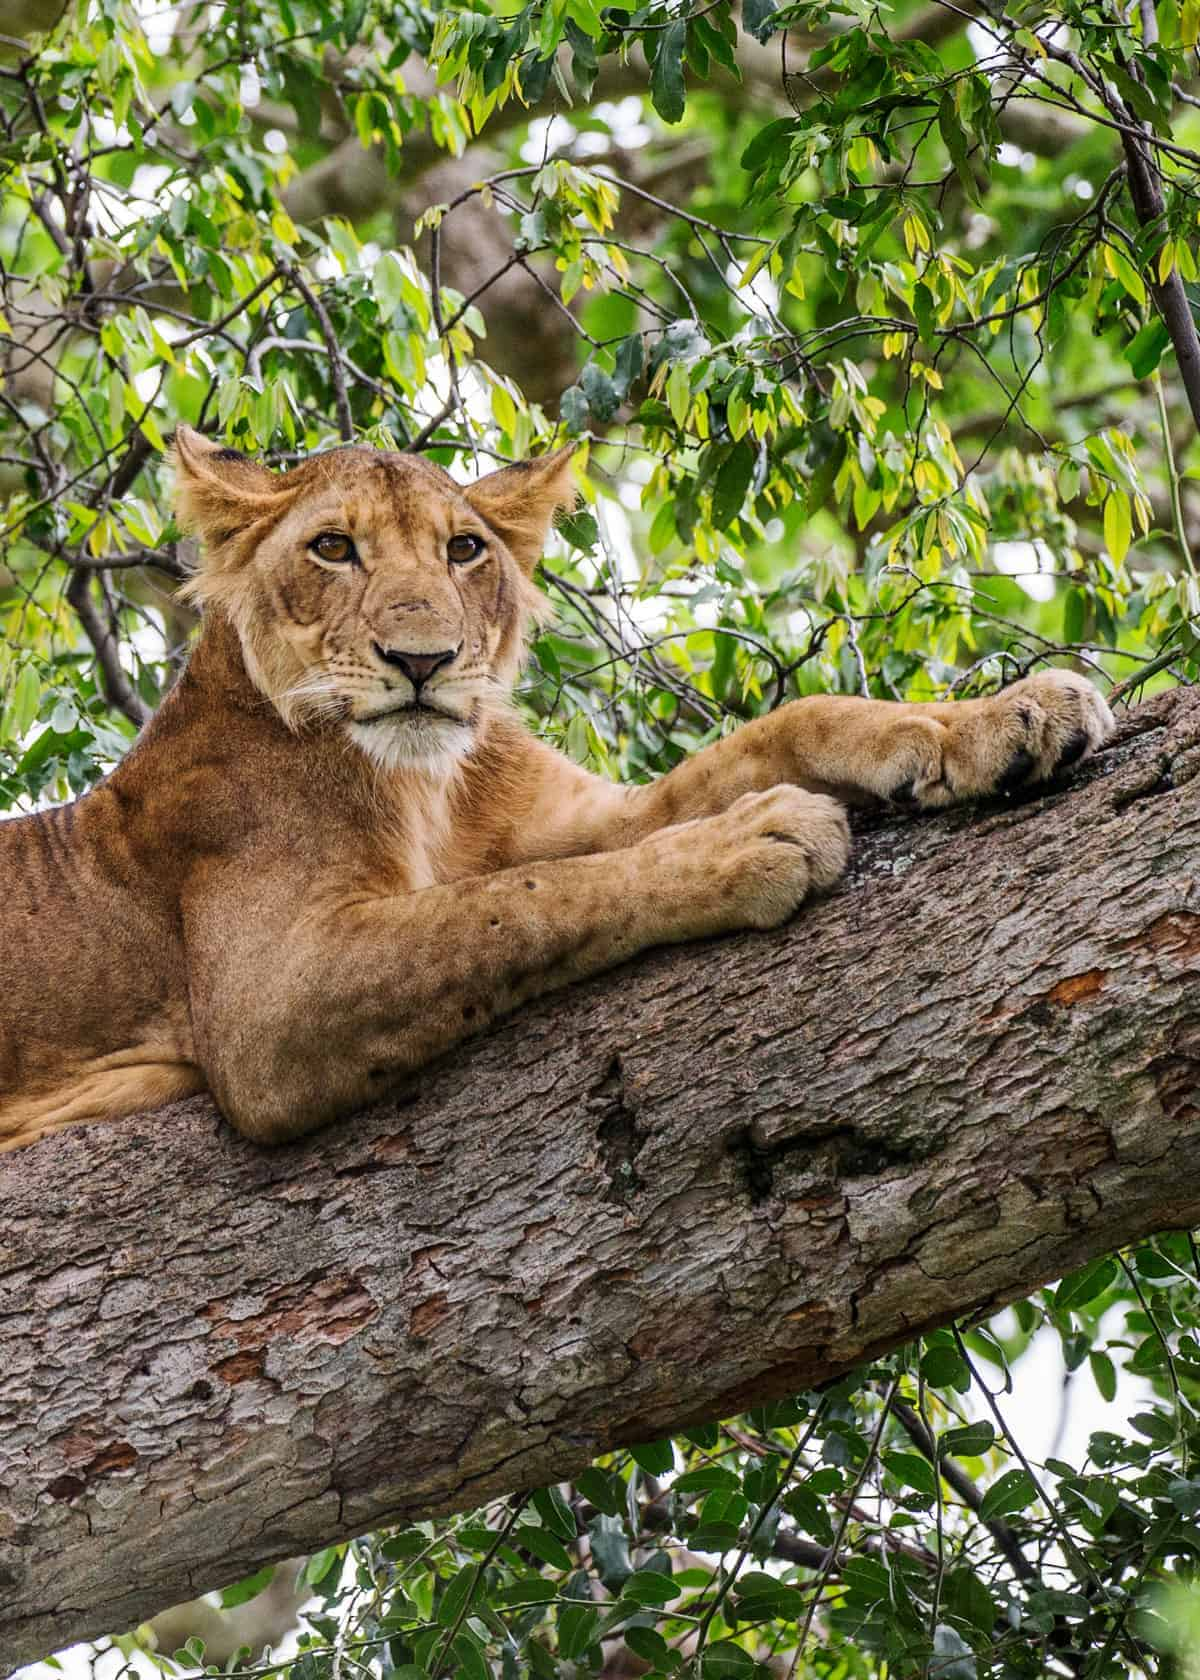 Facts about lions in Africa